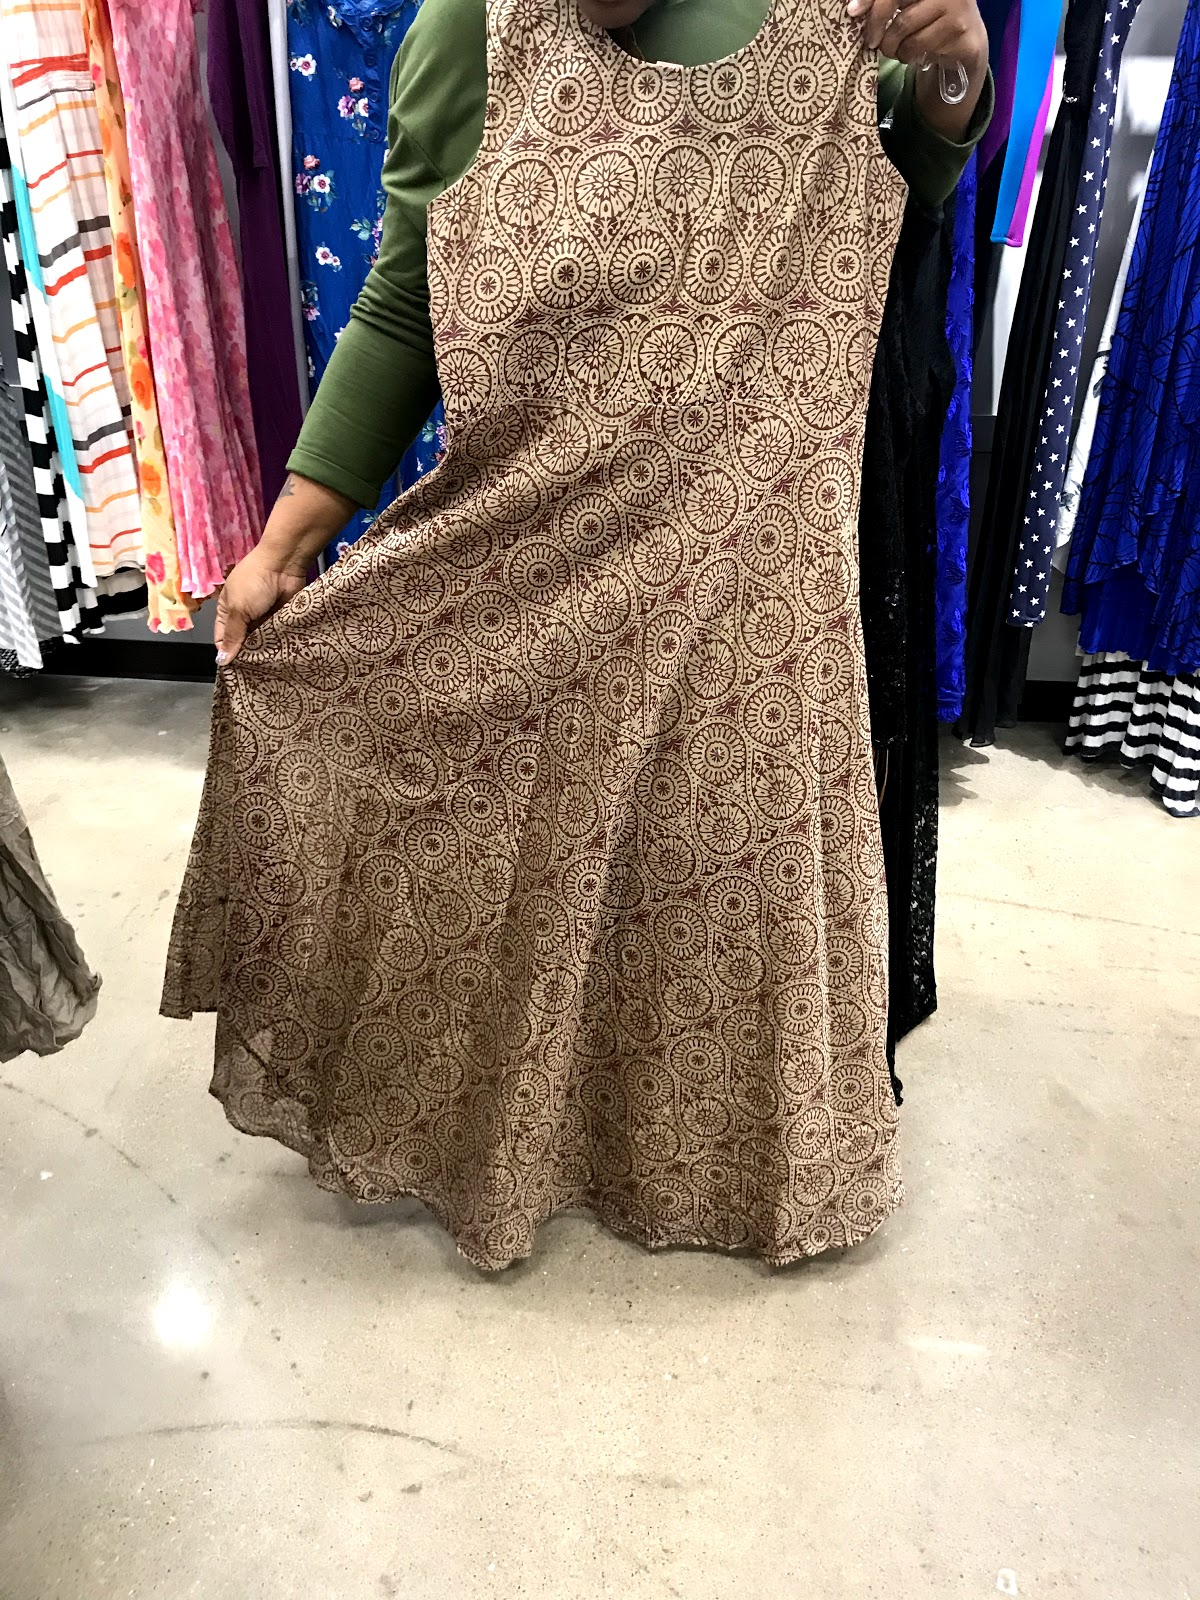 Tangie bell is trying on thrift dresses to buy. You Will Never Guess What I Found At The Thrift Store? And Number Two Is My Jam!